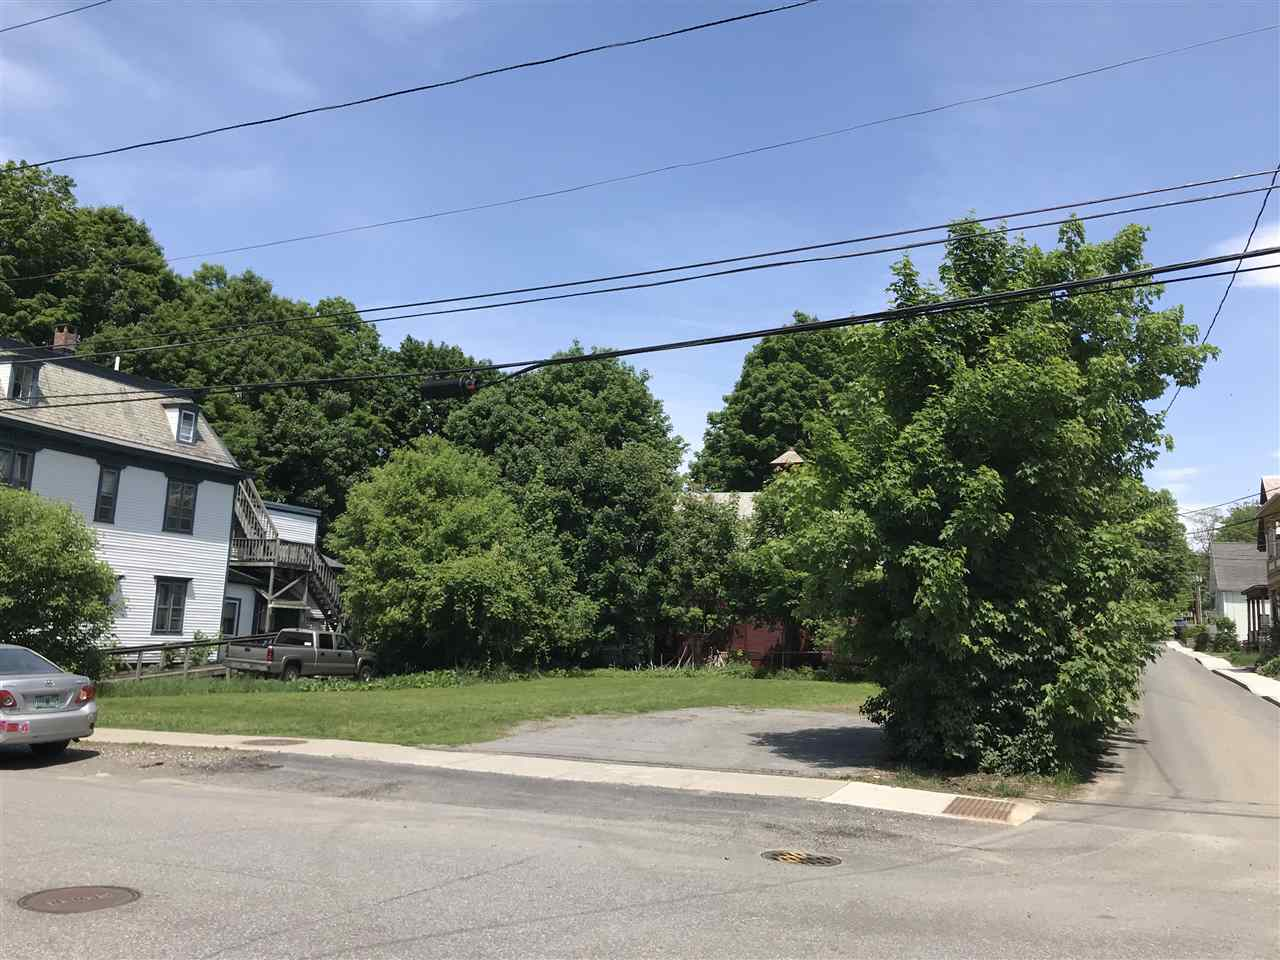 VILLAGE OF BELLOWS FALLS IN TOWN OF ROCKINGHAM VTLAND  for sale $$46,000 | 0.15 Acres  | Price Per Acre $0